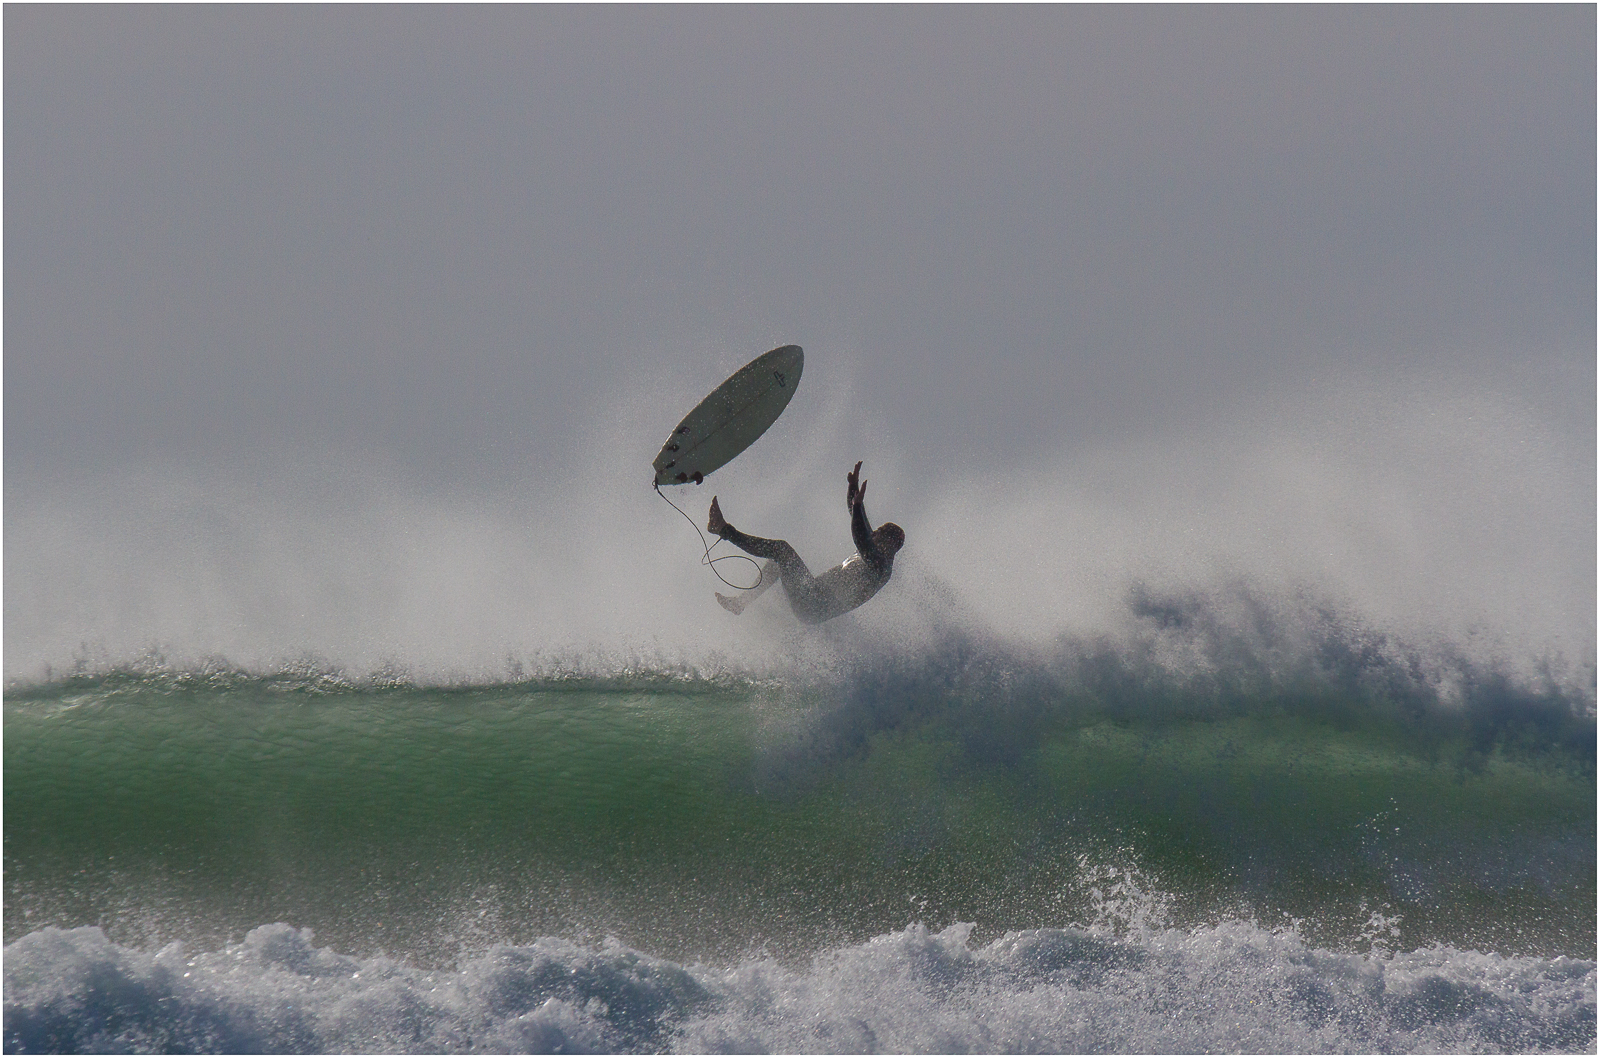 It's wipeout for a surfer in Widemouth Bay north Cornwall. Stunning photograph taken by a guest staying at Gwelmor self catering holiday cottage in north Cornwall